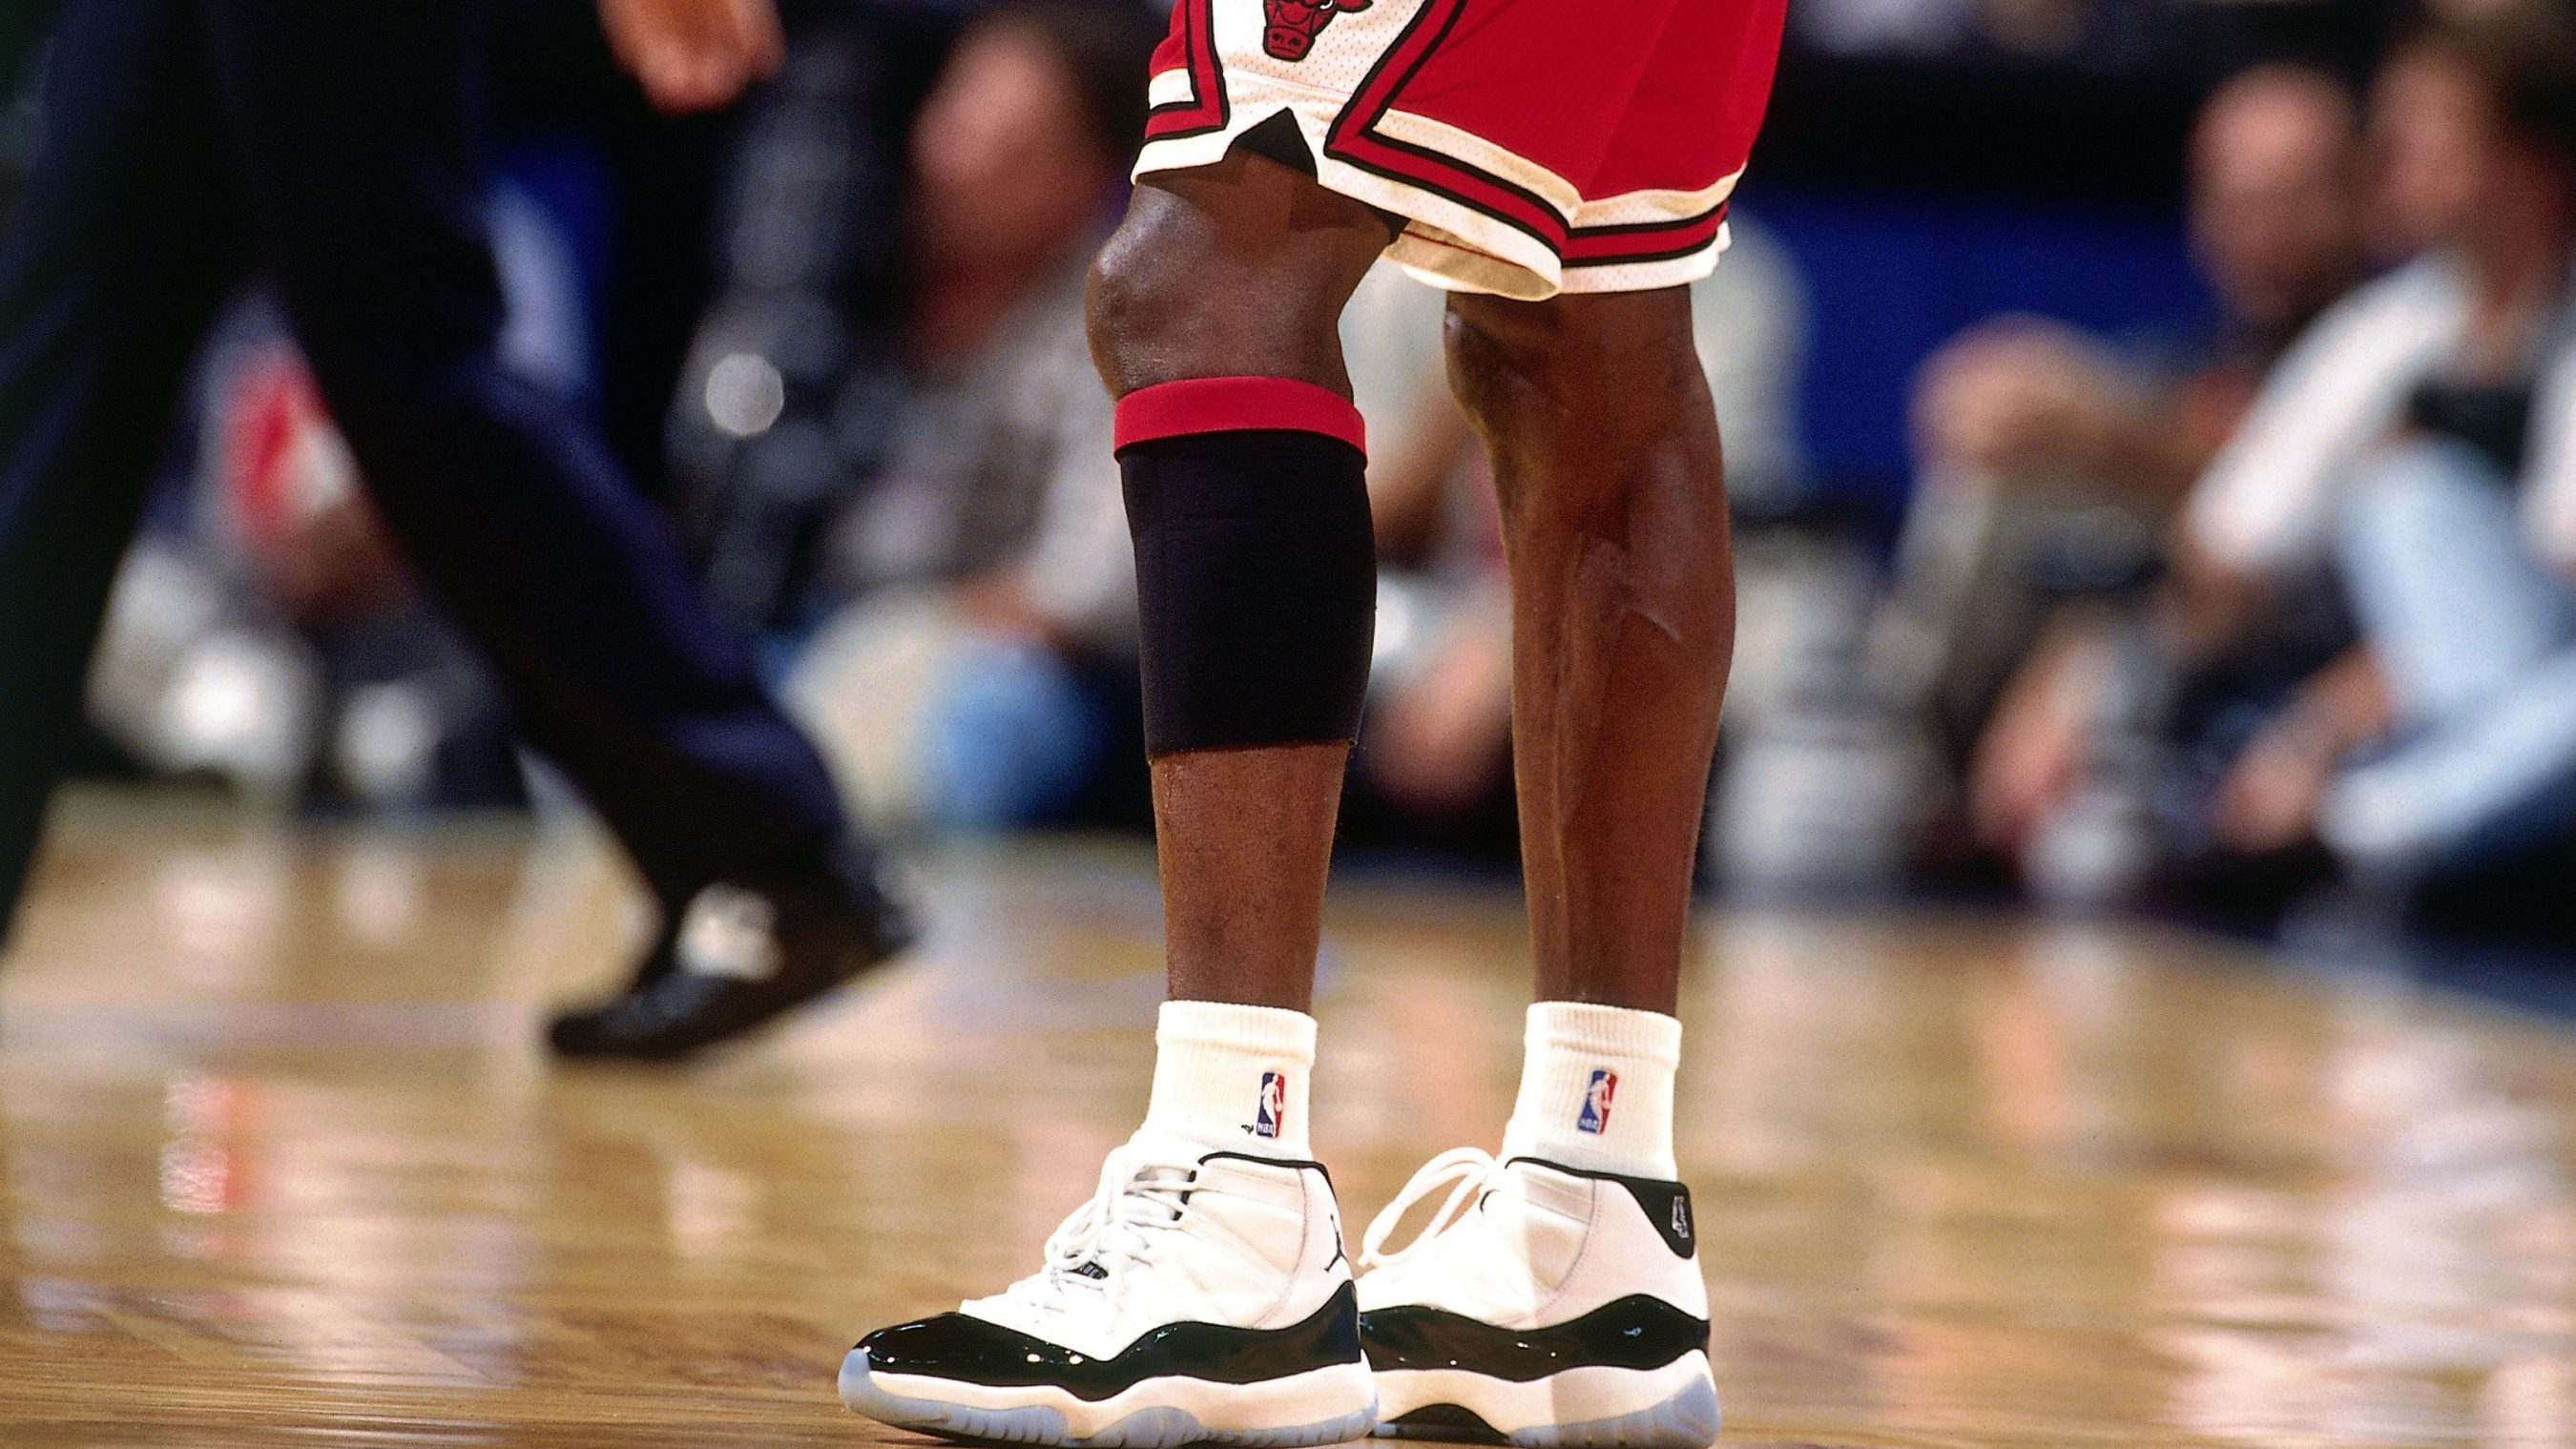 premium selection 8a95f 0a3f7 How the 'Concord' Air Jordan 11 became sneaker culture's grail